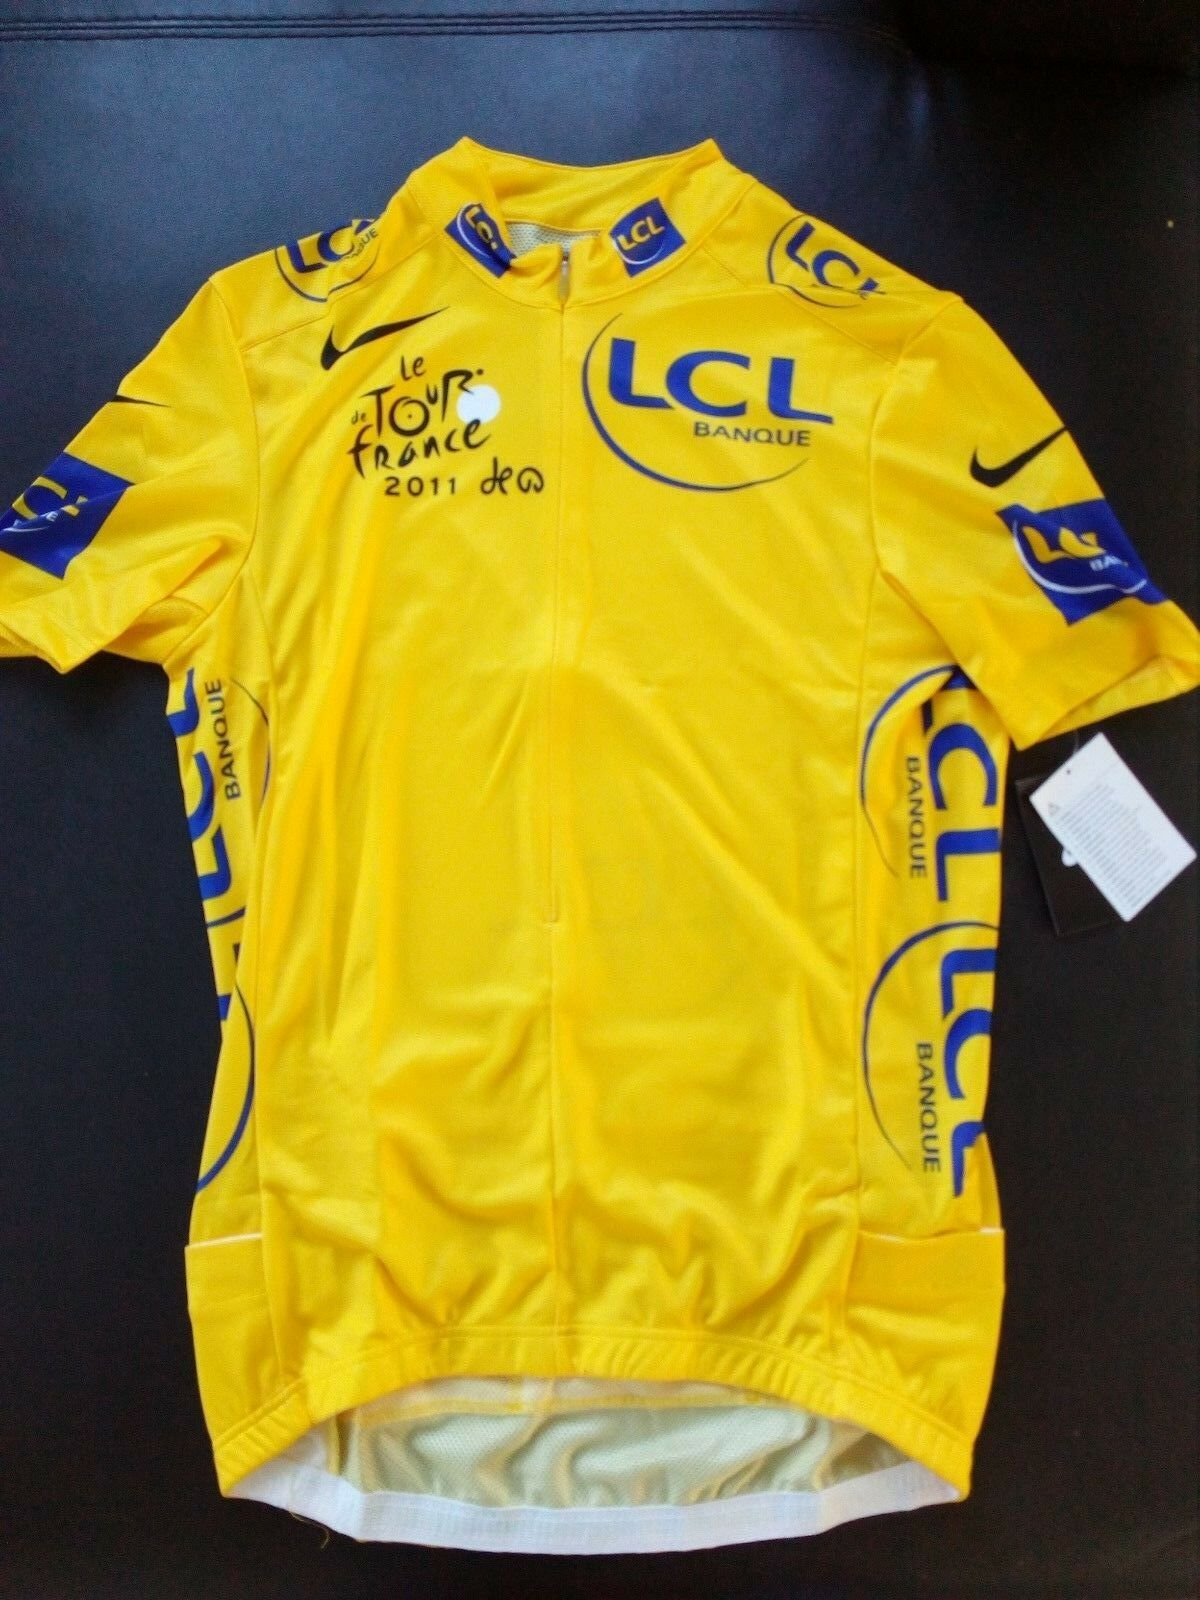 Football jersey yellow cyclist NIKE tour de france 2011